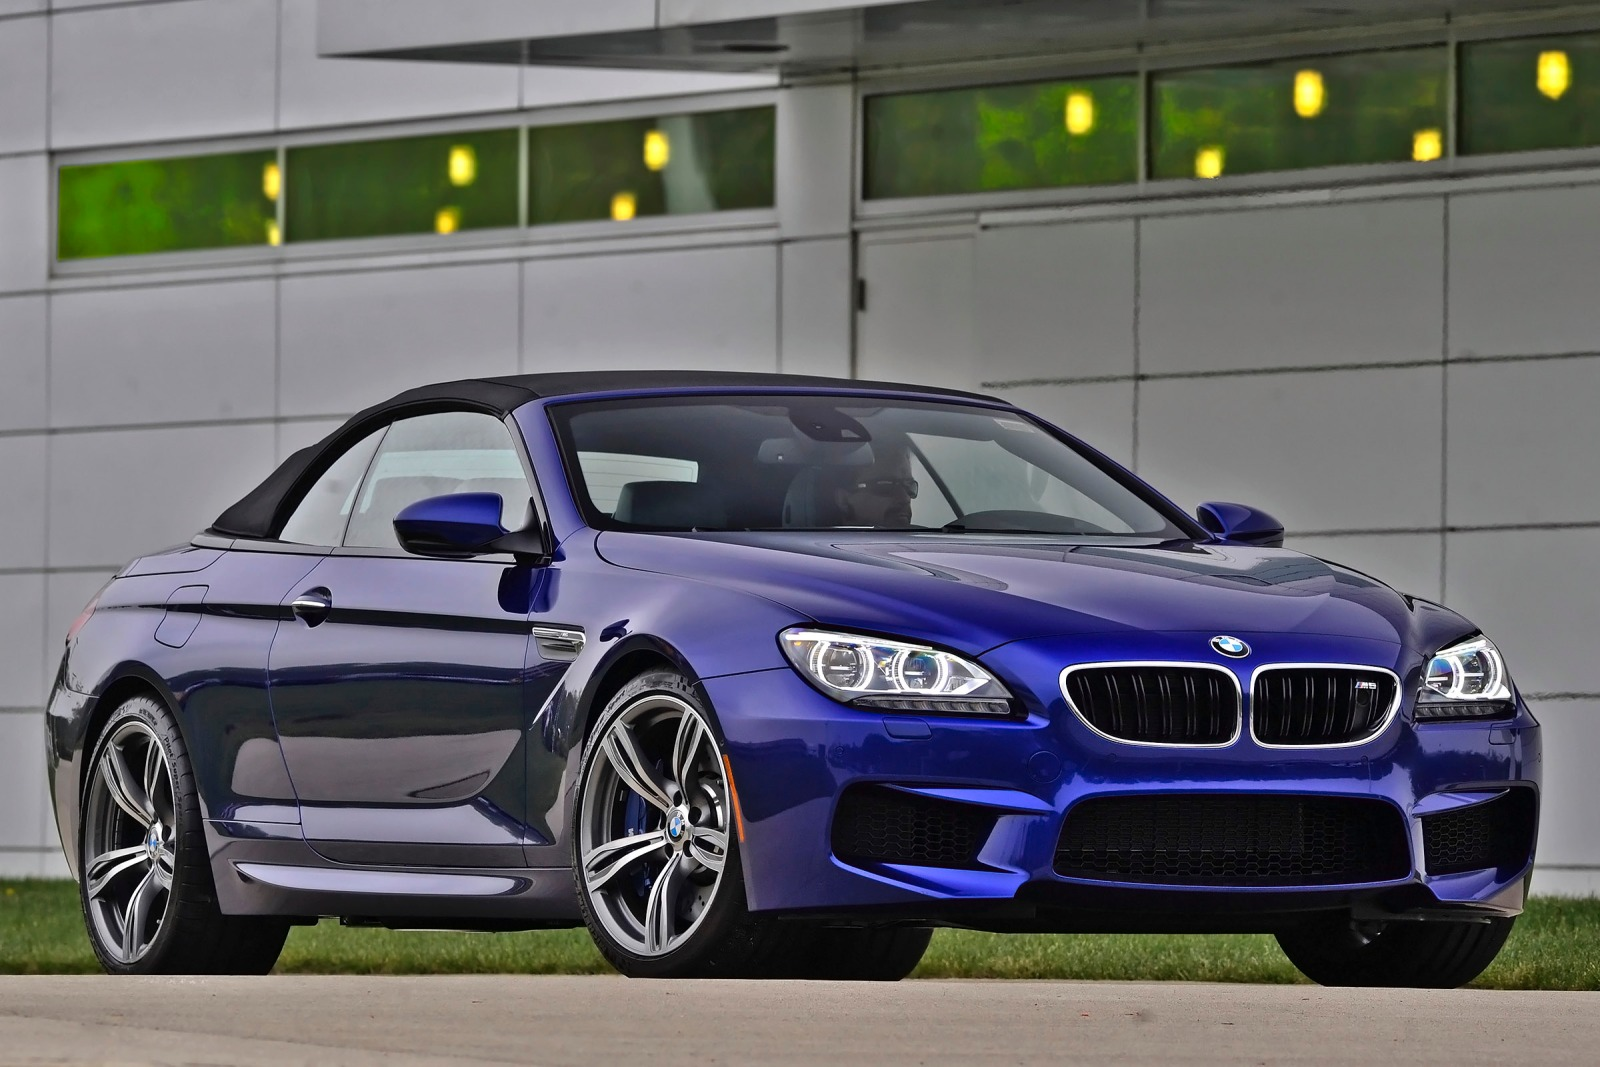 2018 Bmw M6 Convertible Car Photos Catalog 2019